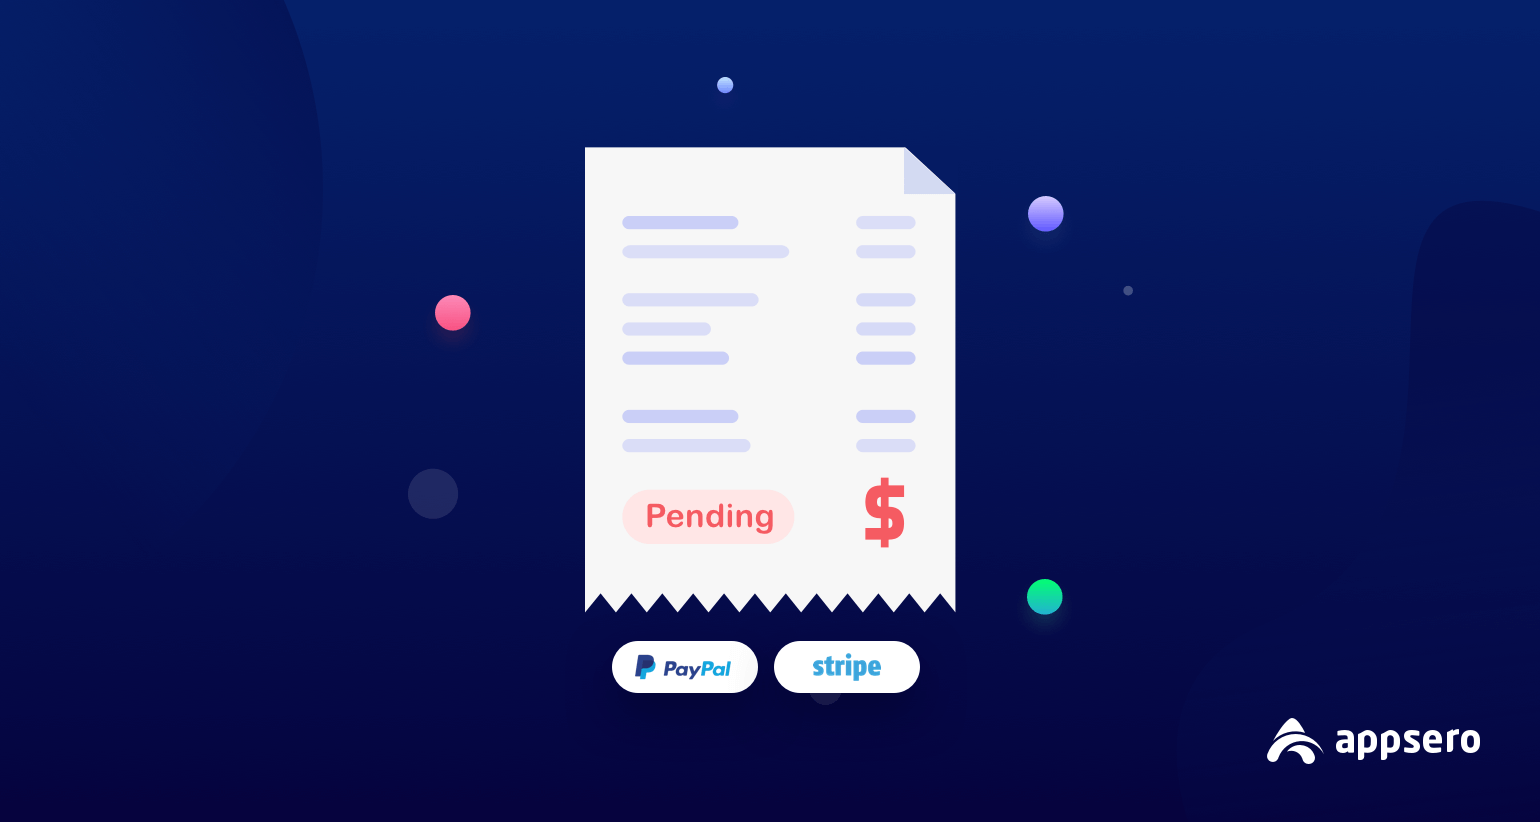 What Does It Mean When a Transaction is Pending